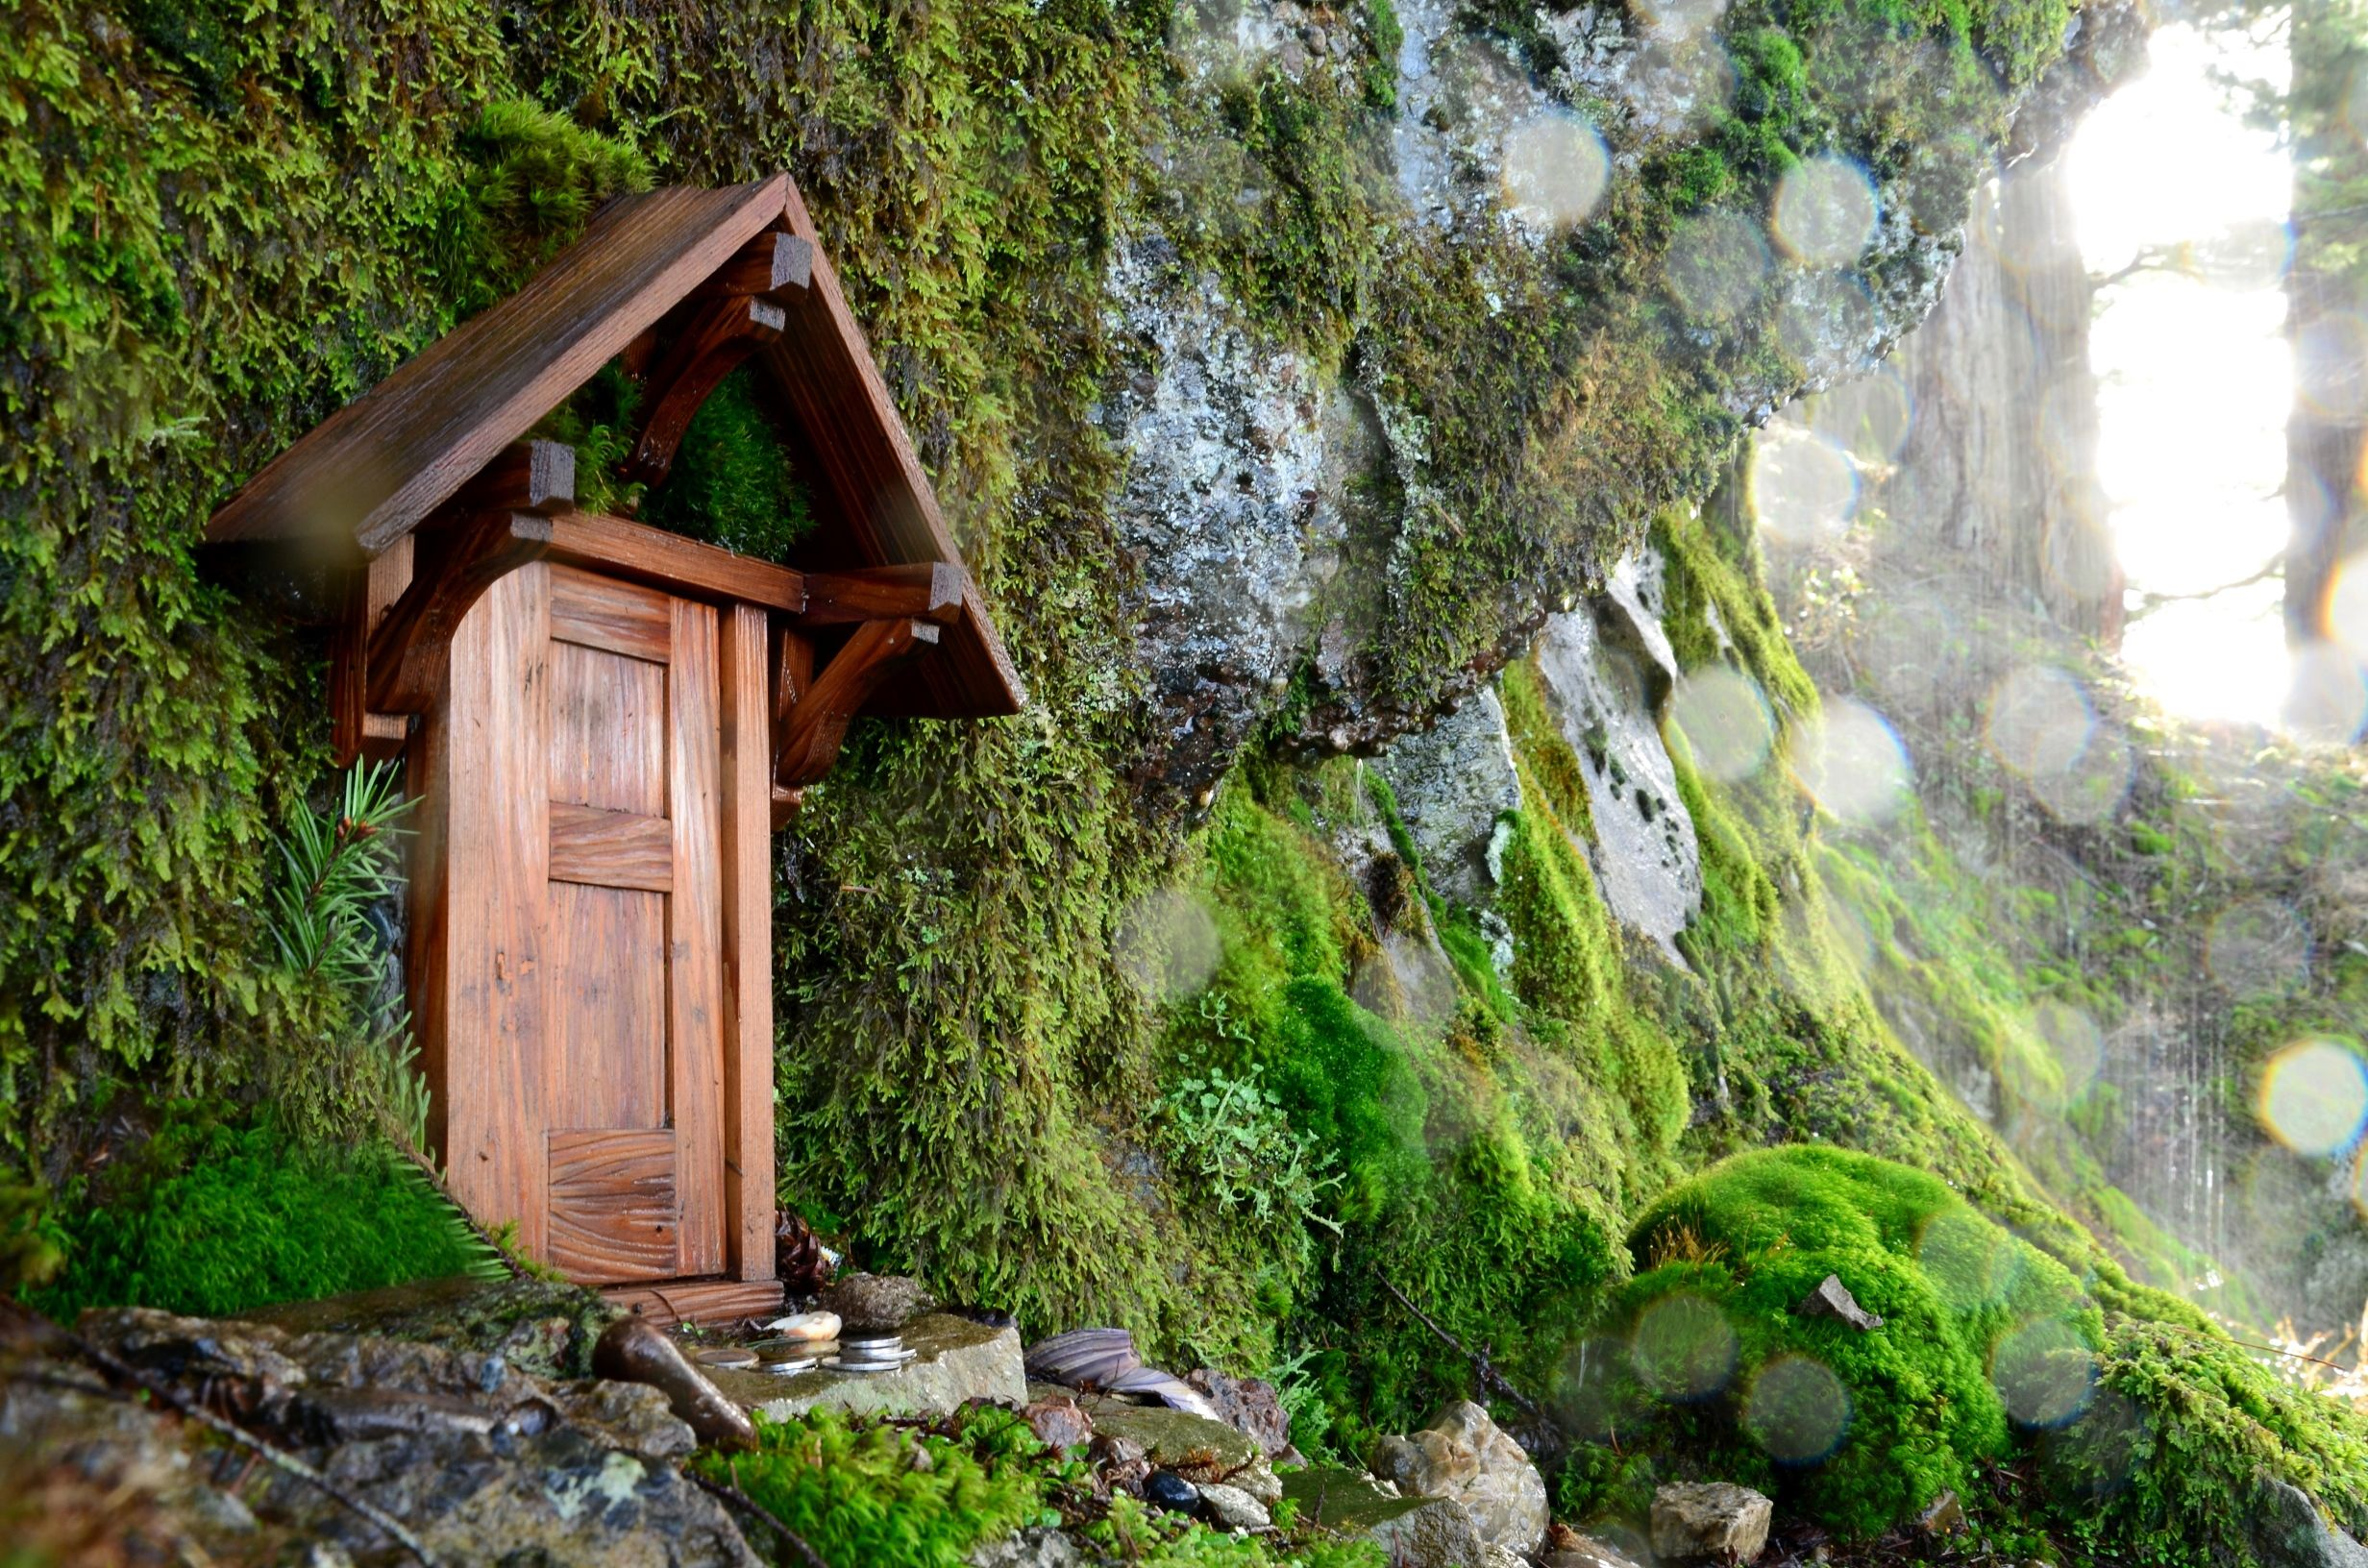 Faerie Door on Mount Erskine & Faerie Door on Mount Erskine | Fairies | Pinterest